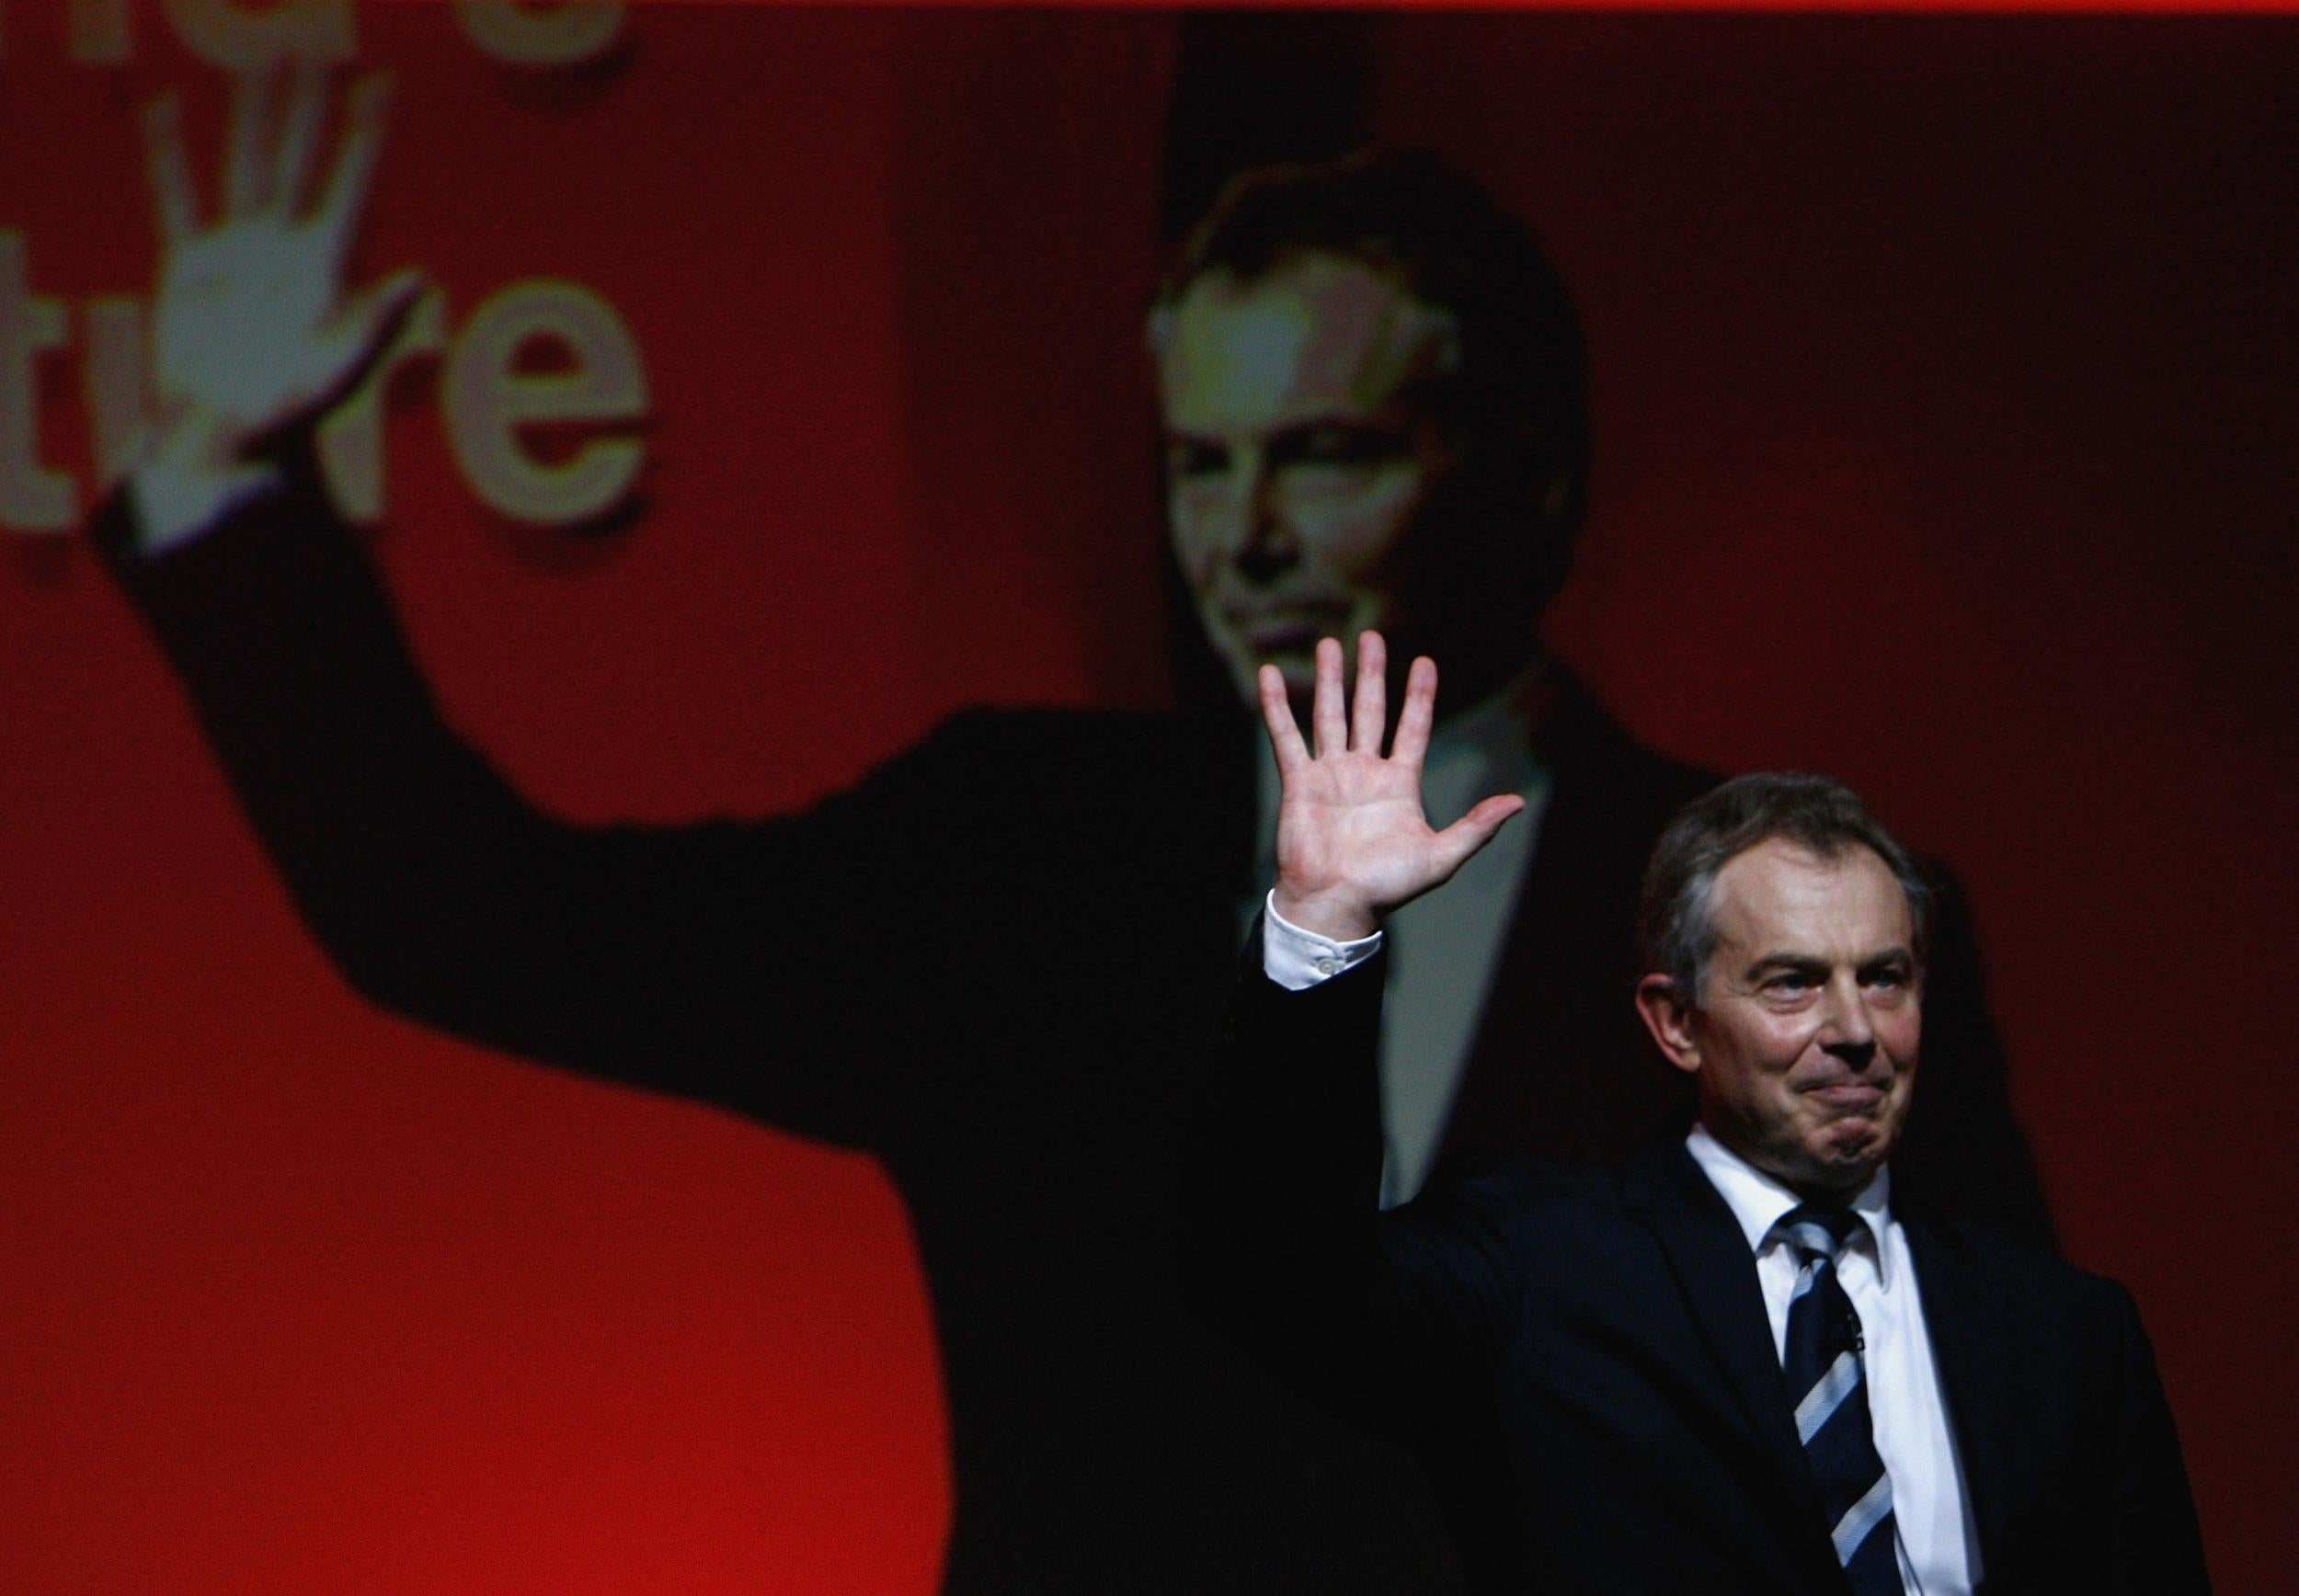 A quarter of a century on, Tony Blair's dream has turned to nightmare